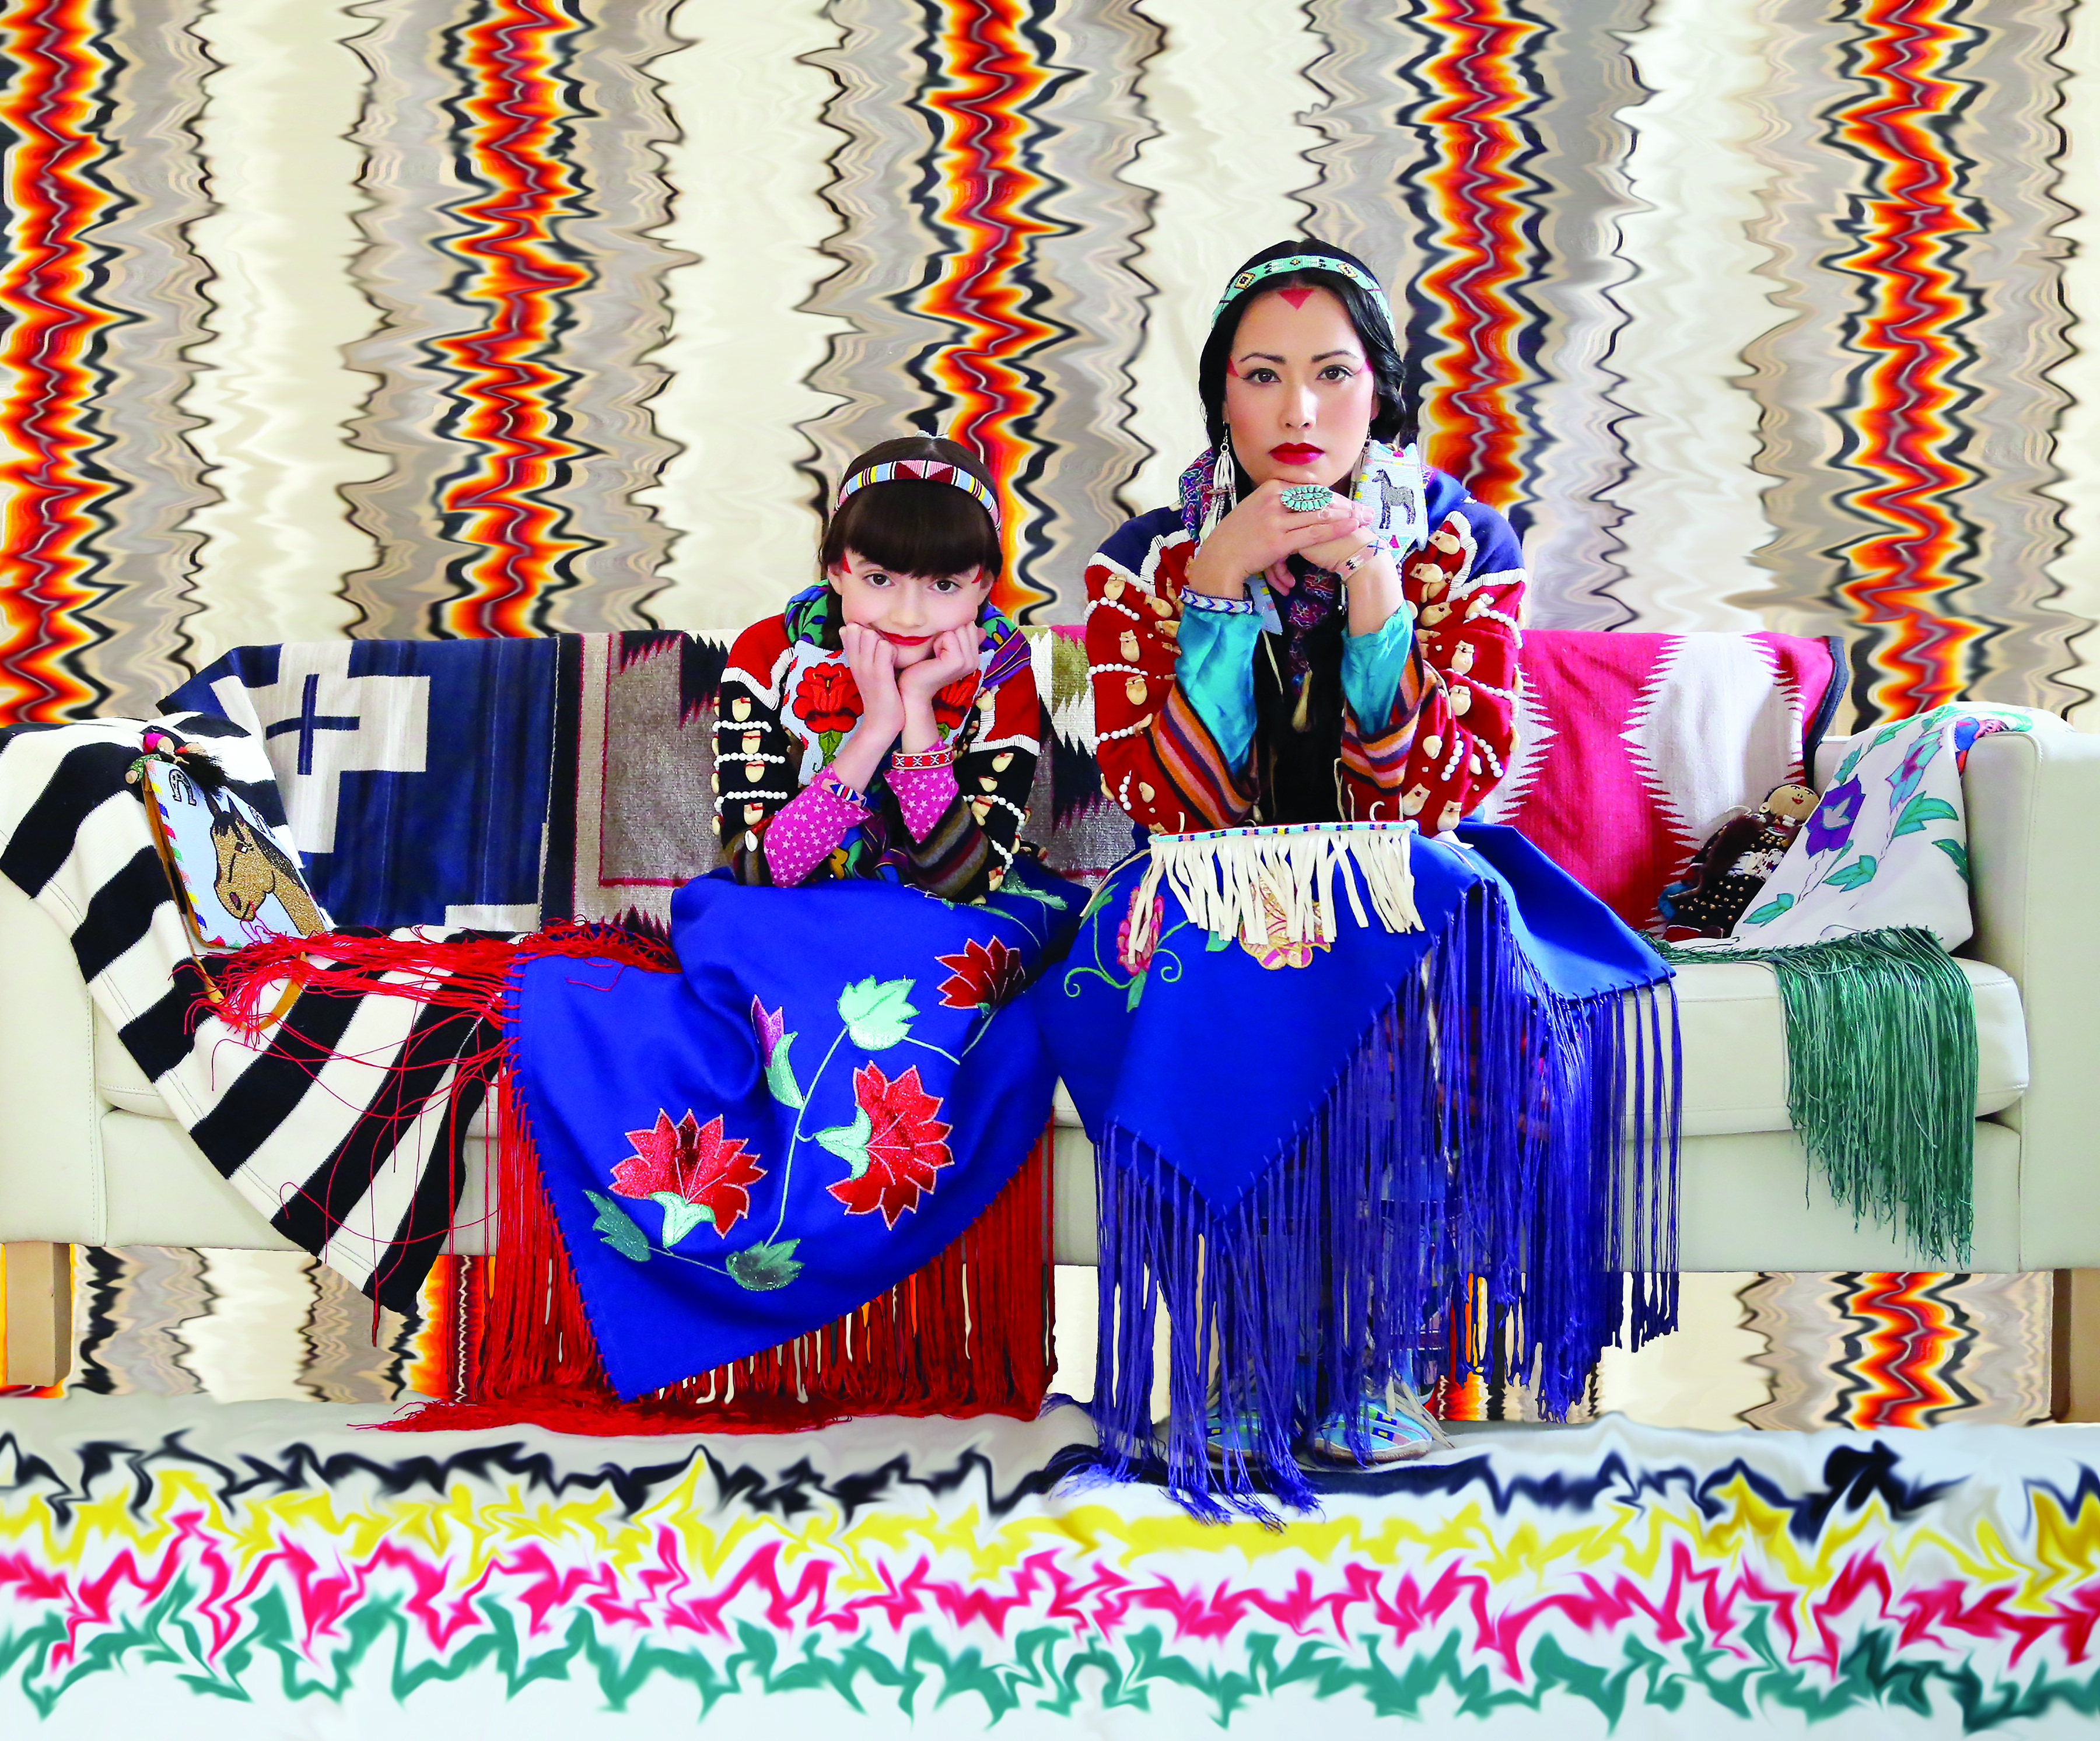 Woman and young girl dressed in Native garb sitting on a couch before a background of dizzying patterns.